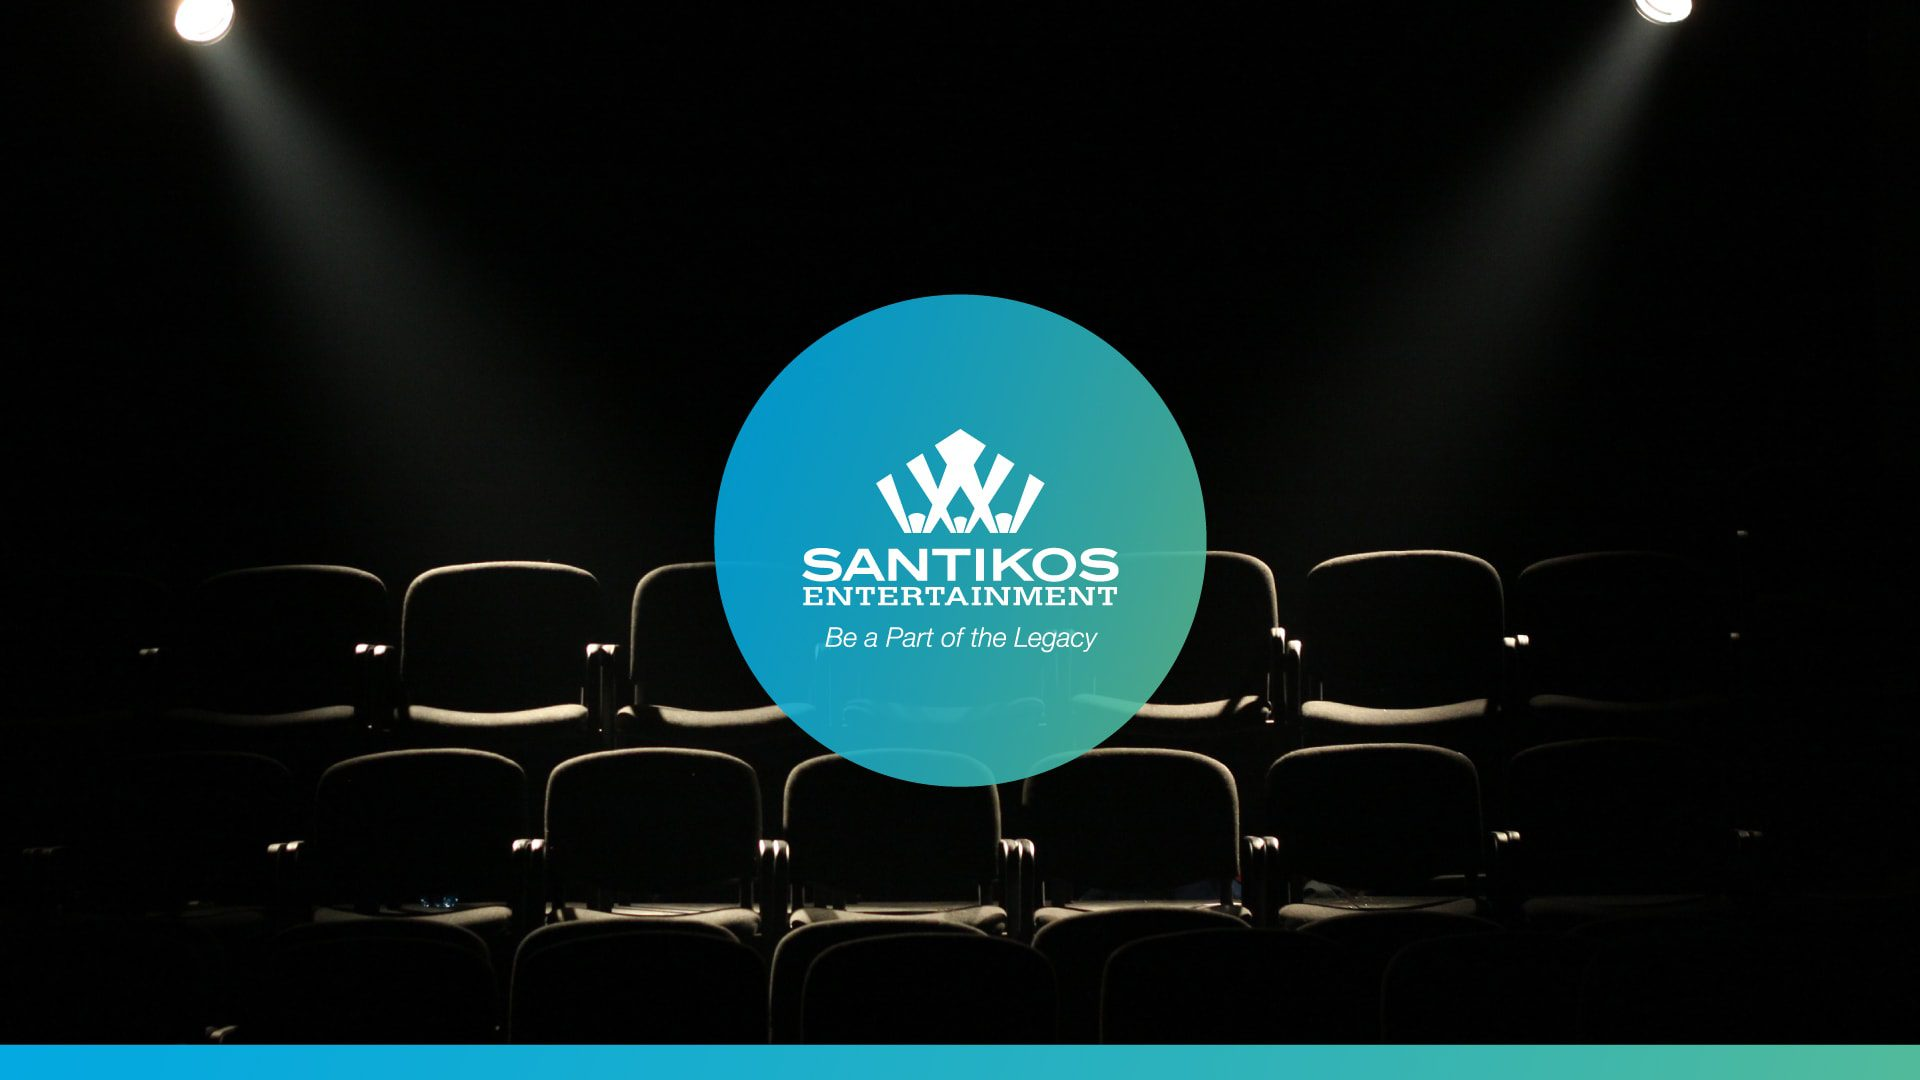 Santikos | Be Part of the Legacy